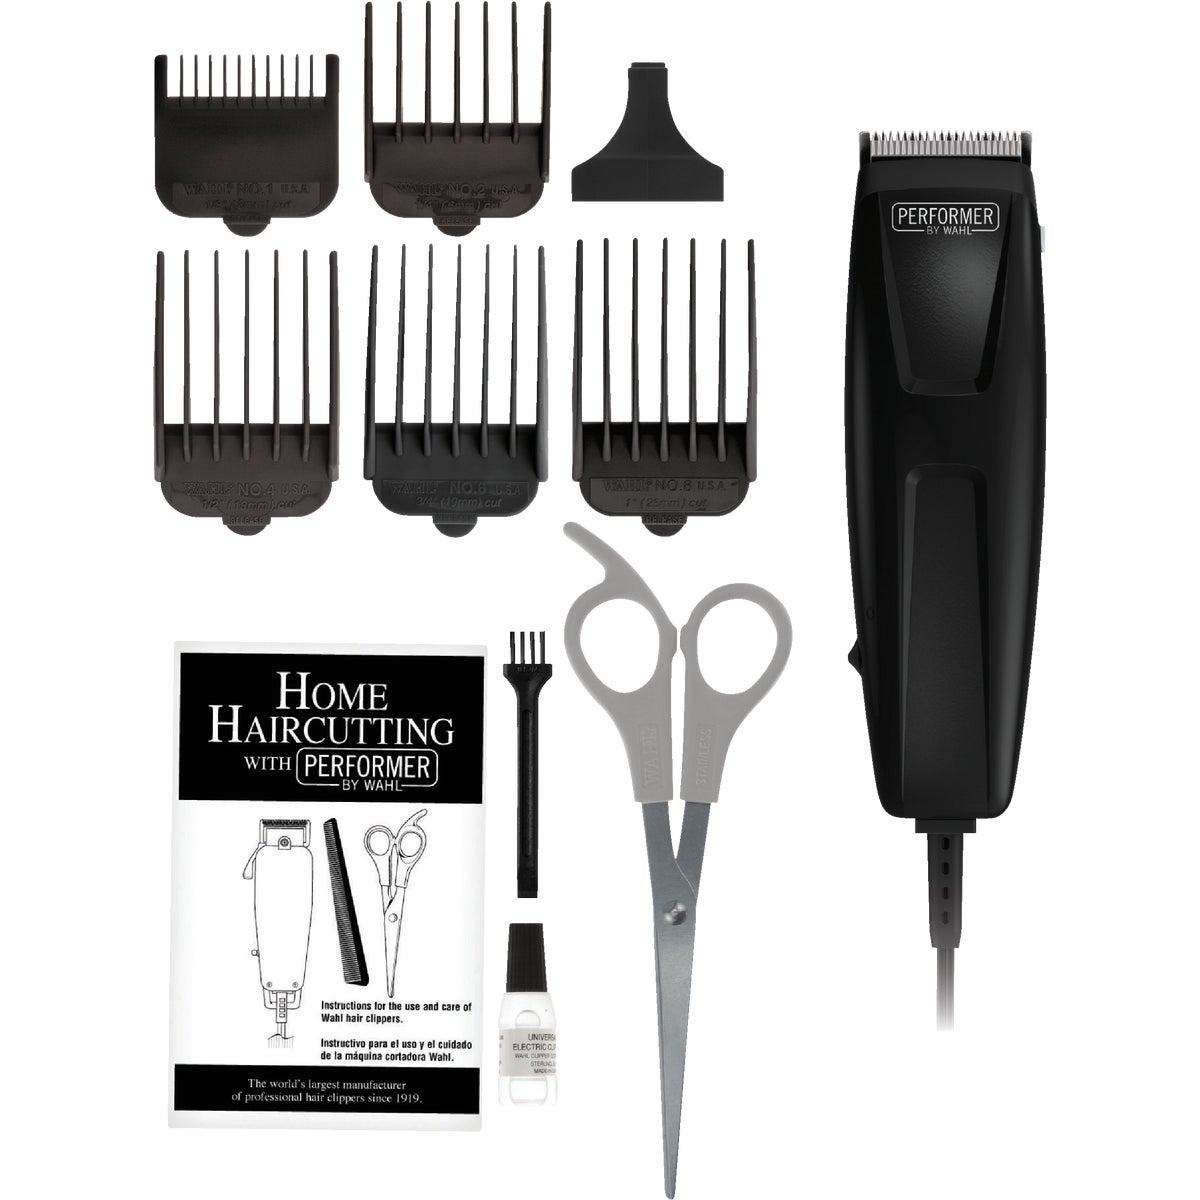 10PC HAIR CUTTING KIT